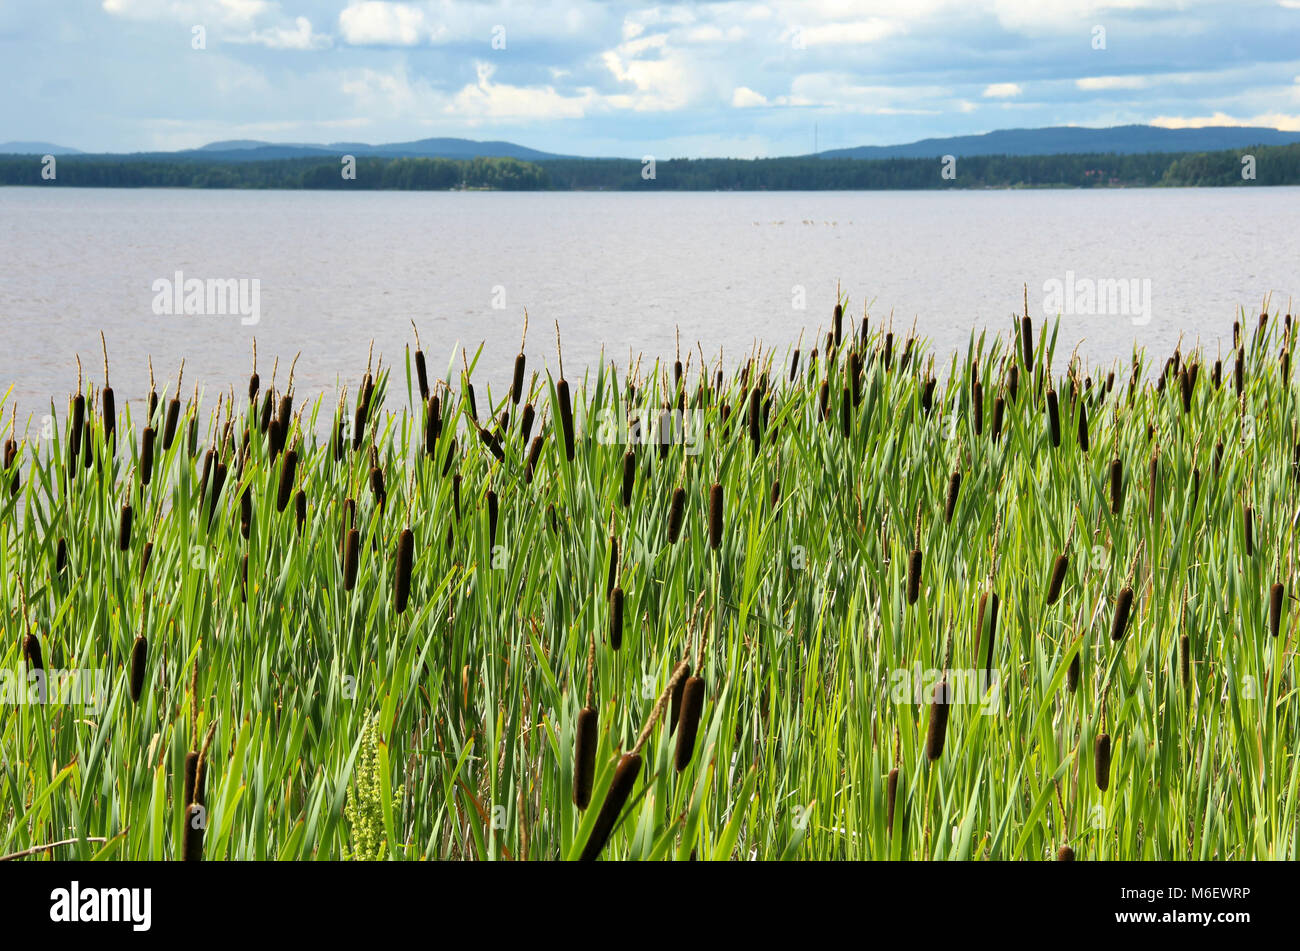 Beach by Orsa lake in Dalarna, Sweden, with lots of bulrush plants in the foreground. - Stock Image